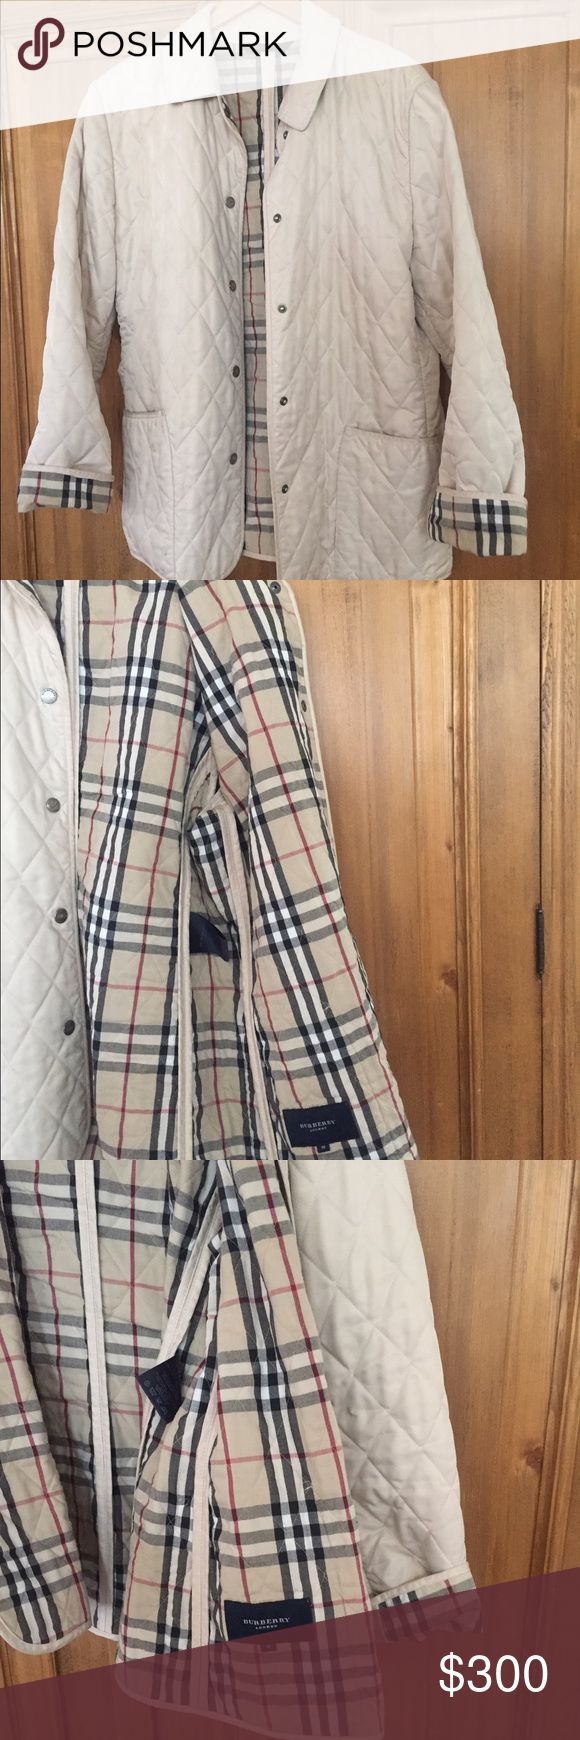 how to tell authentic burberry jacket